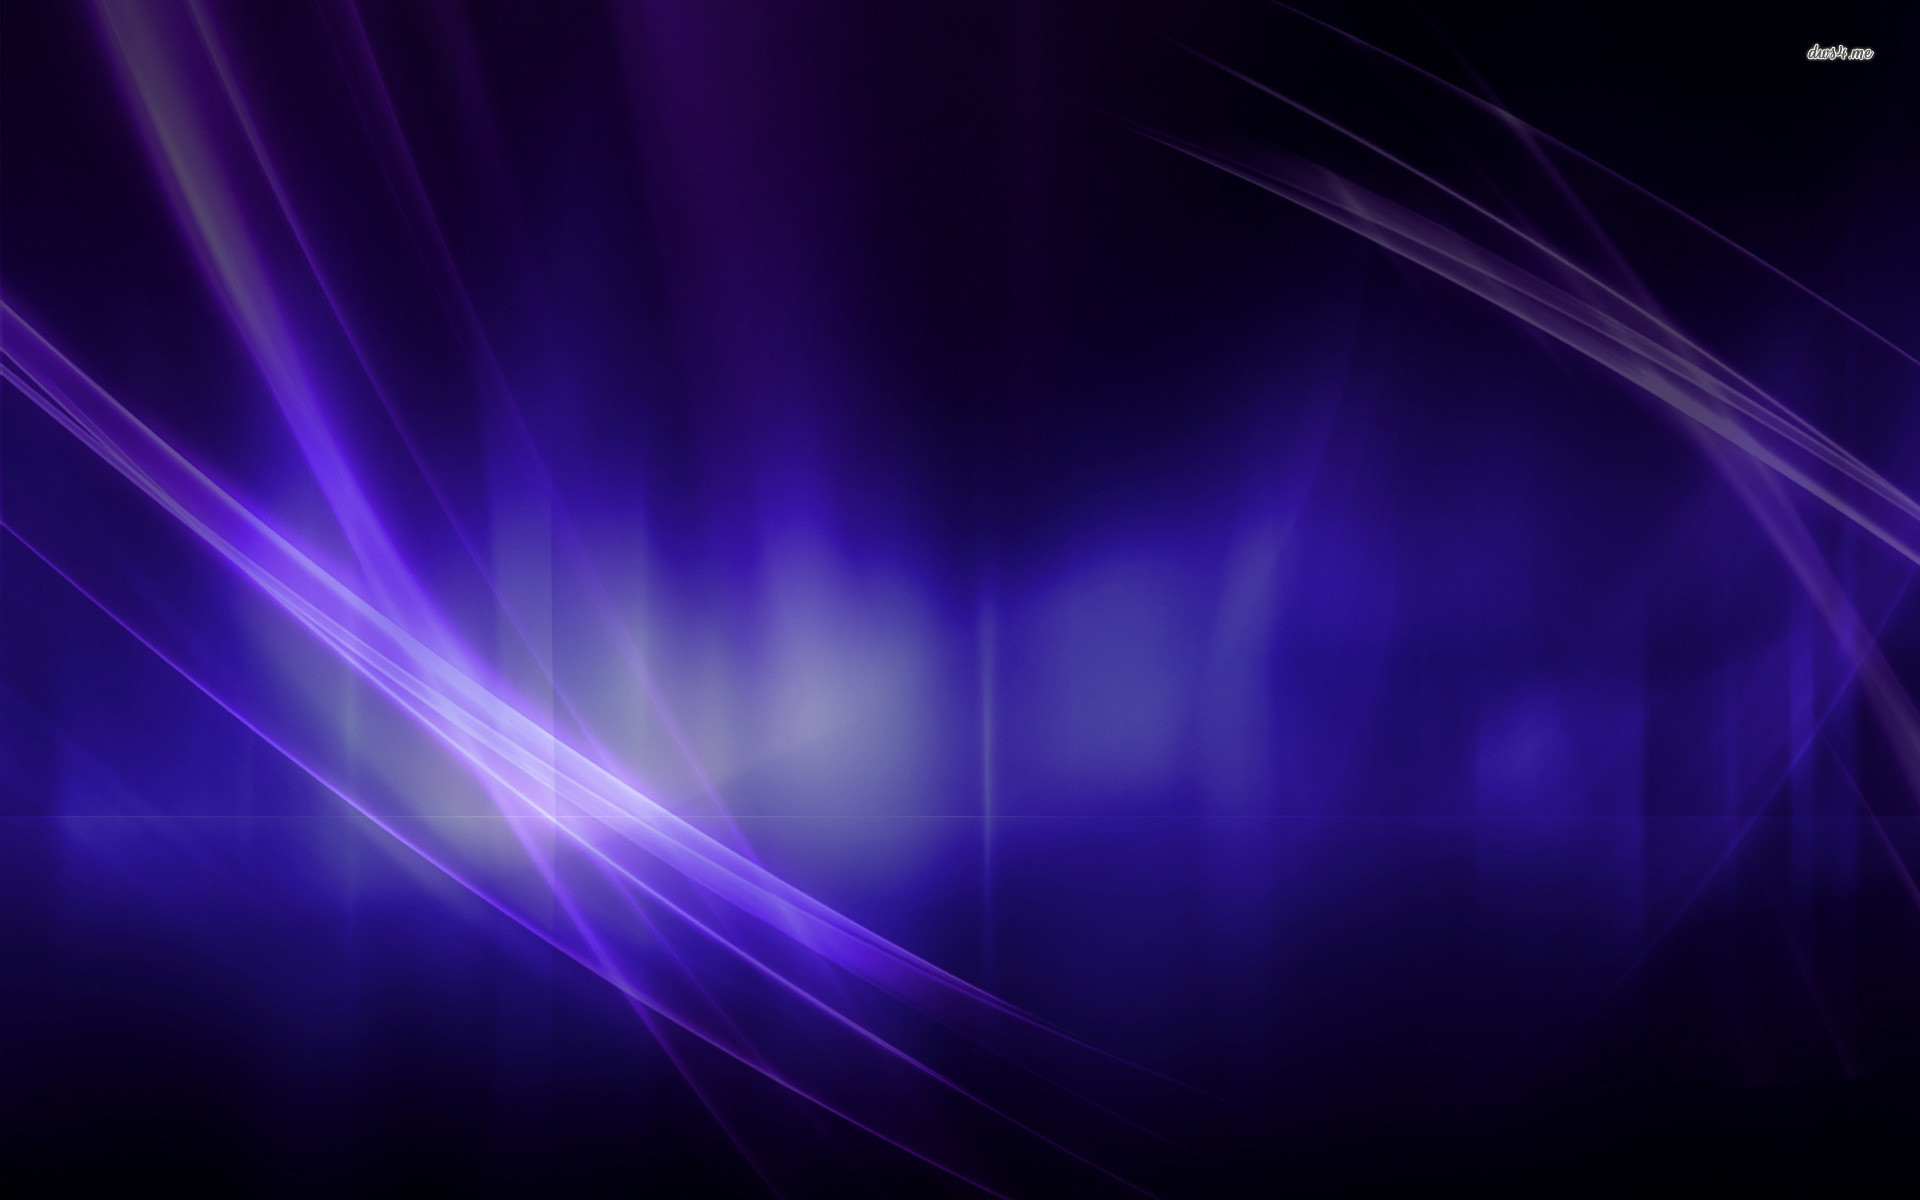 Free Abstract Wallpapers And Screensavers, Gallery of 33 Abstract